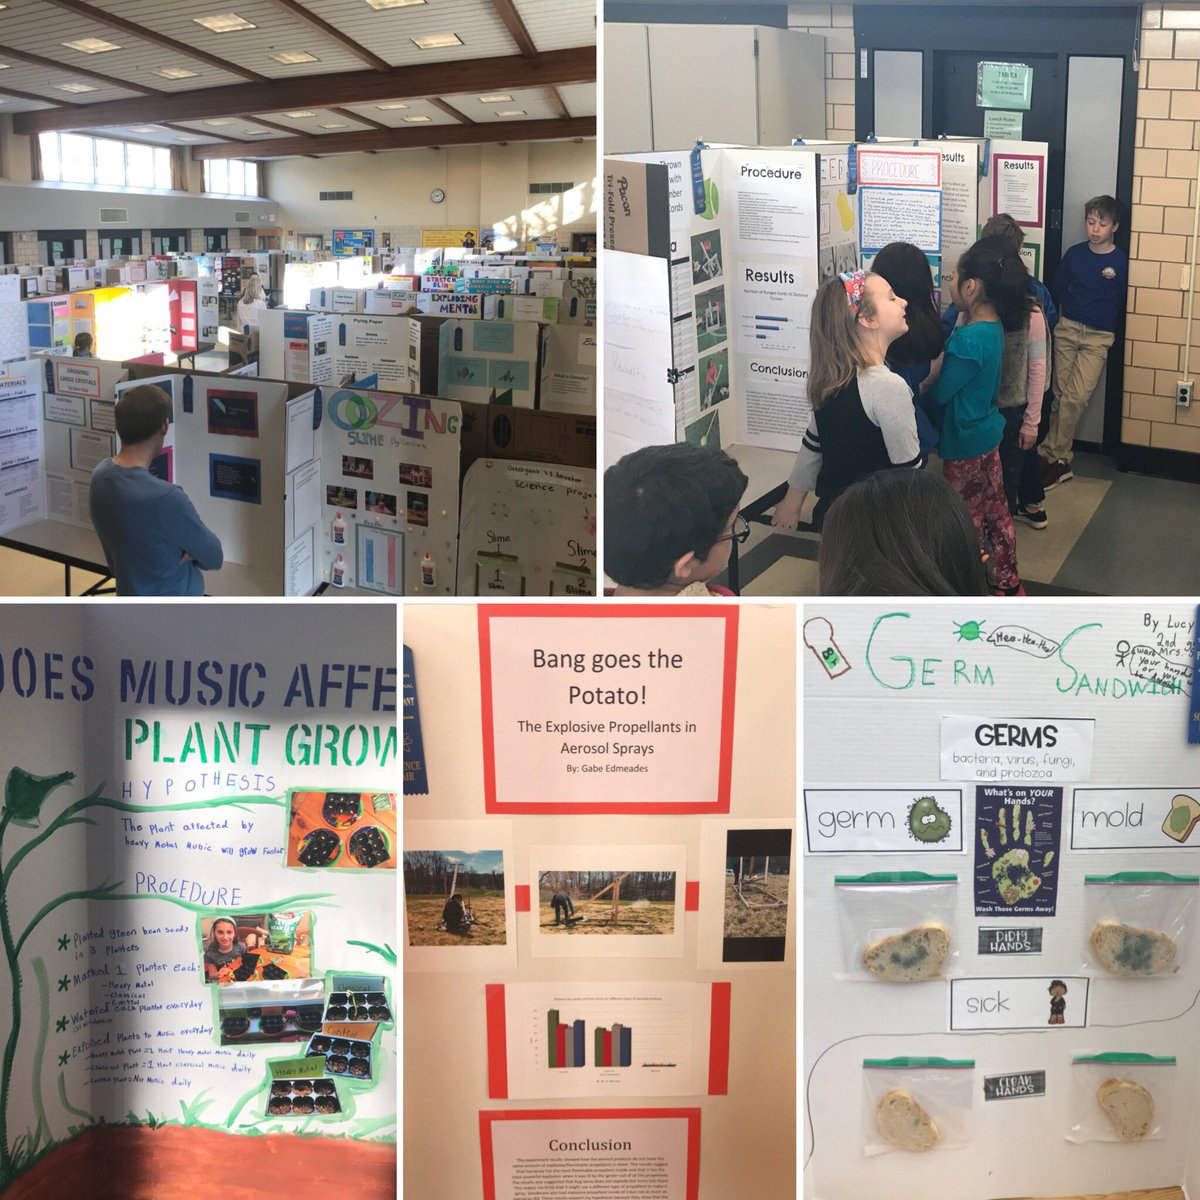 Science fair projects everywhere! <a target='_blank' href='http://twitter.com/APSscience'>@APSscience</a> <a target='_blank' href='http://twitter.com/APSMath'>@APSMath</a> <a target='_blank' href='http://twitter.com/APSGifted'>@APSGifted</a> <a target='_blank' href='https://t.co/HqeaehwWze'>https://t.co/HqeaehwWze</a>